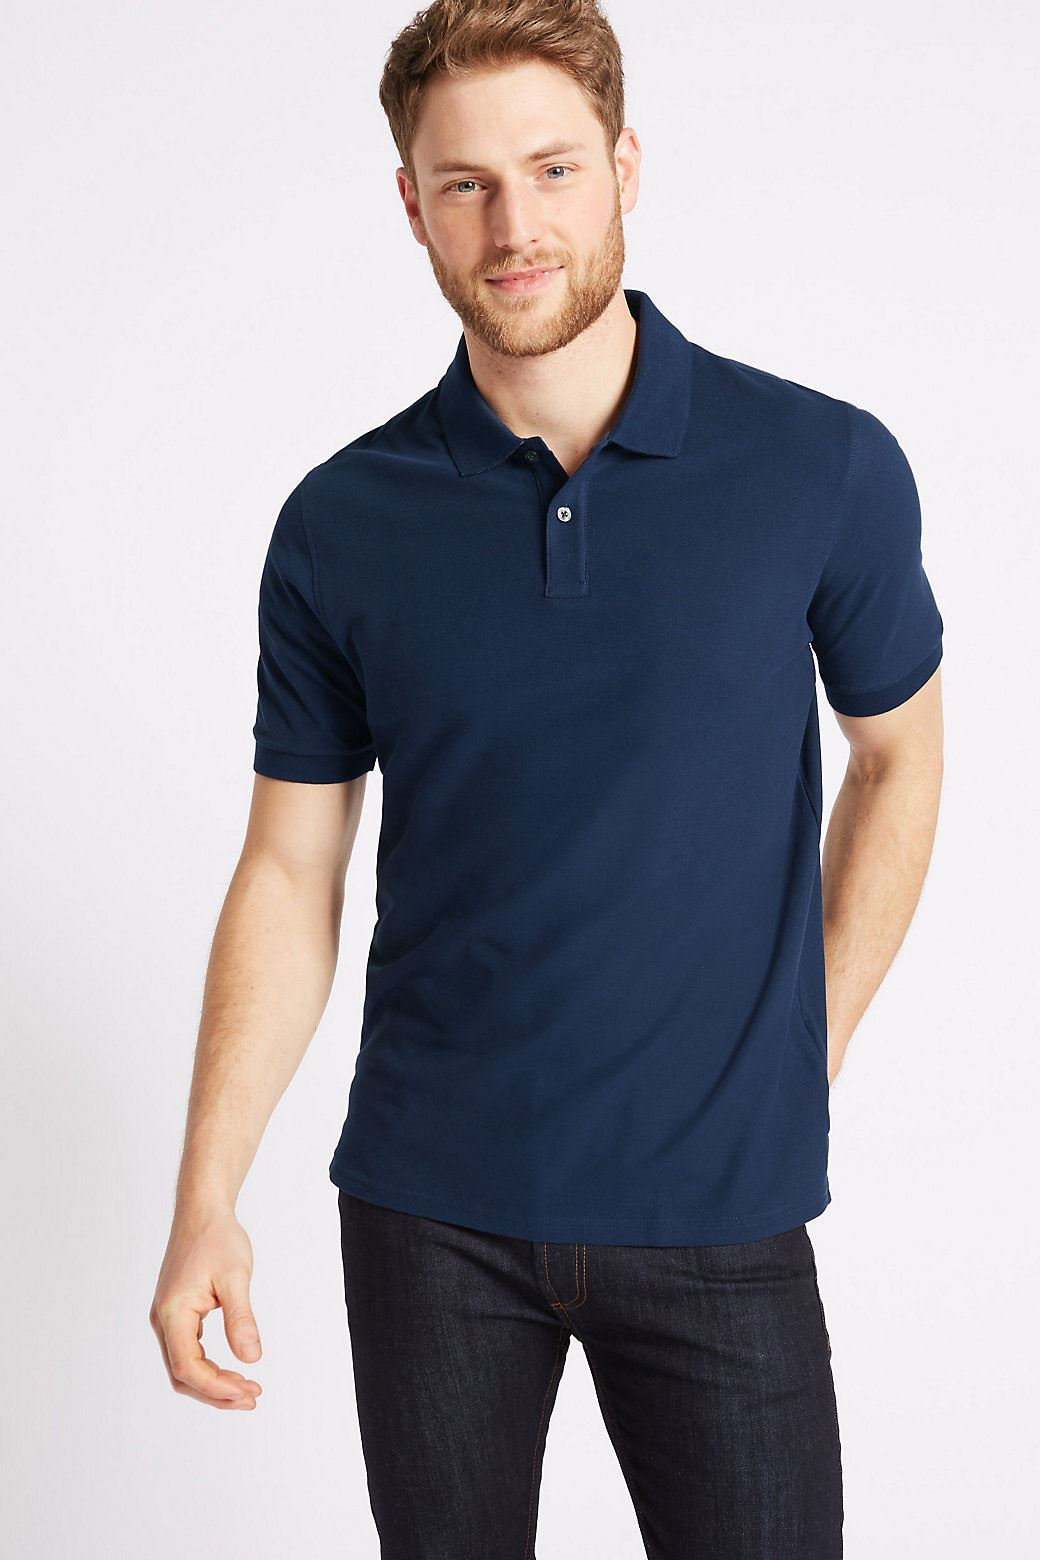 Marks-amp-Spencer-Mens-Cotton-Pique-Polo-Shirt-Extra-Large-Sizes thumbnail 17